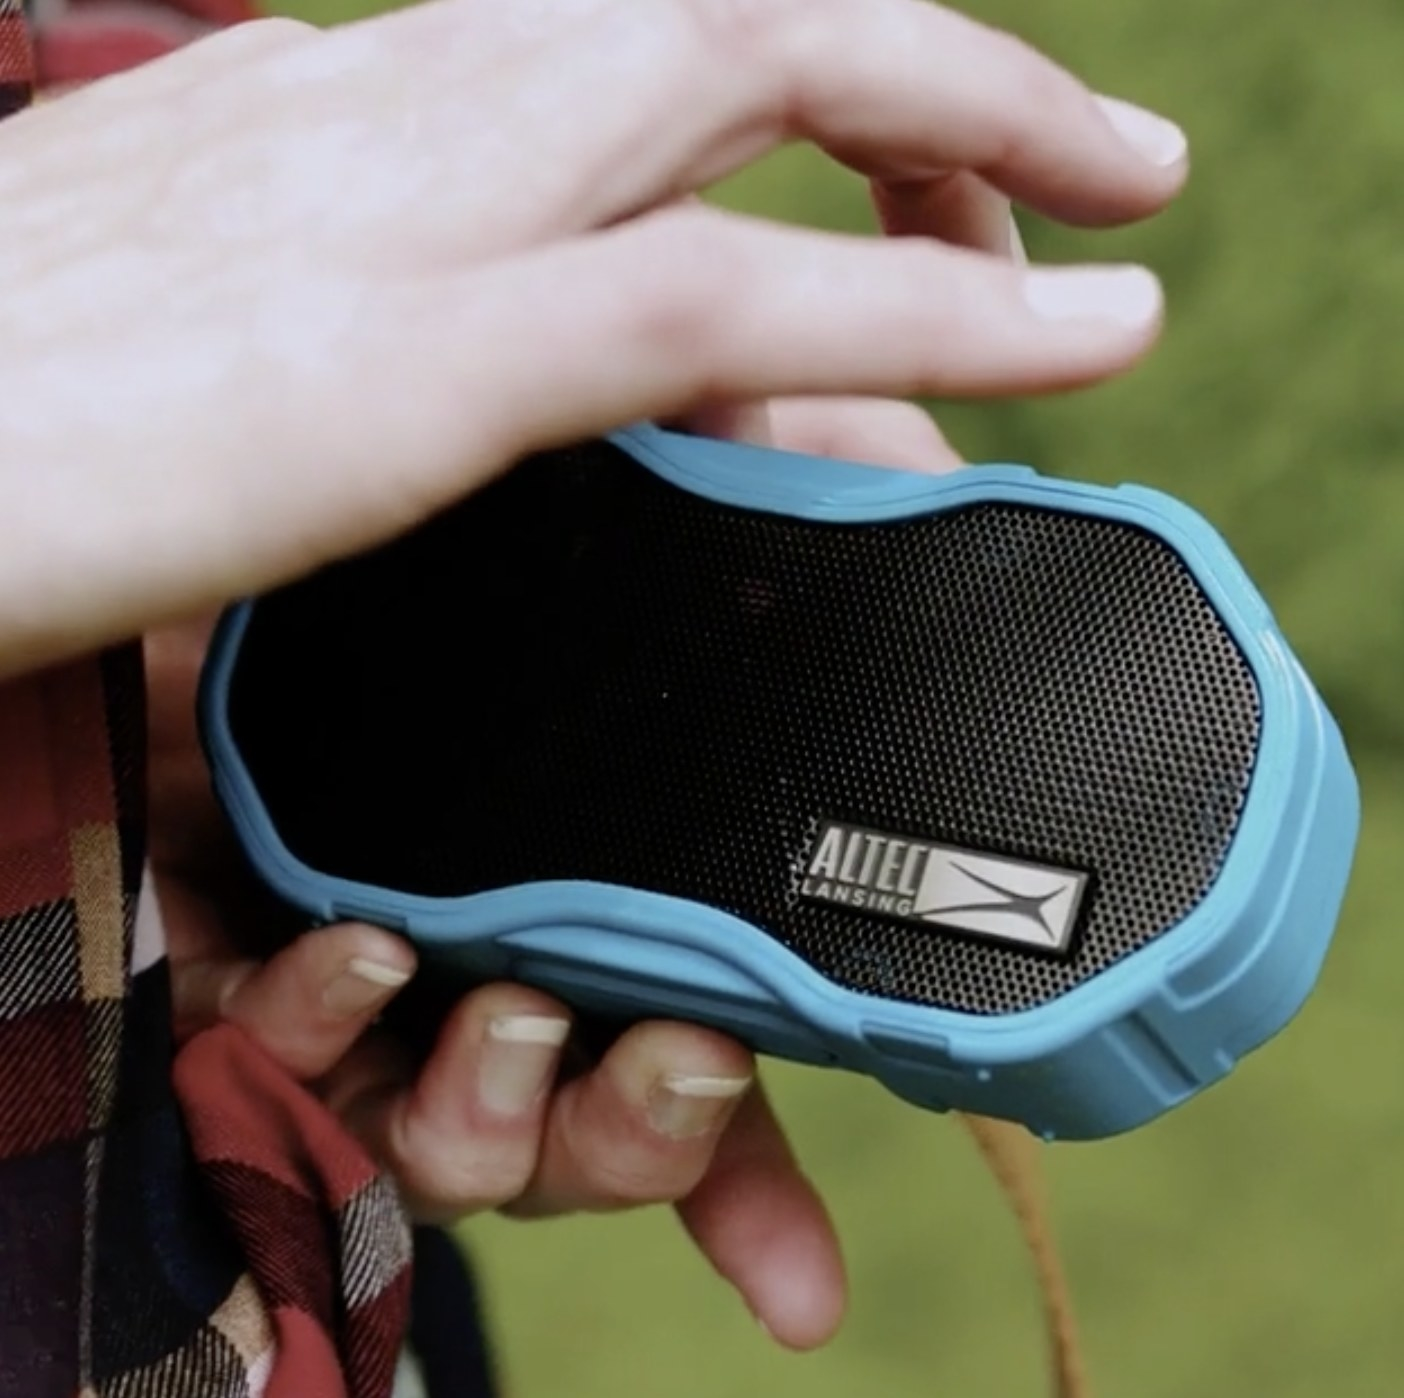 Person is holding a BlueTooth speaker